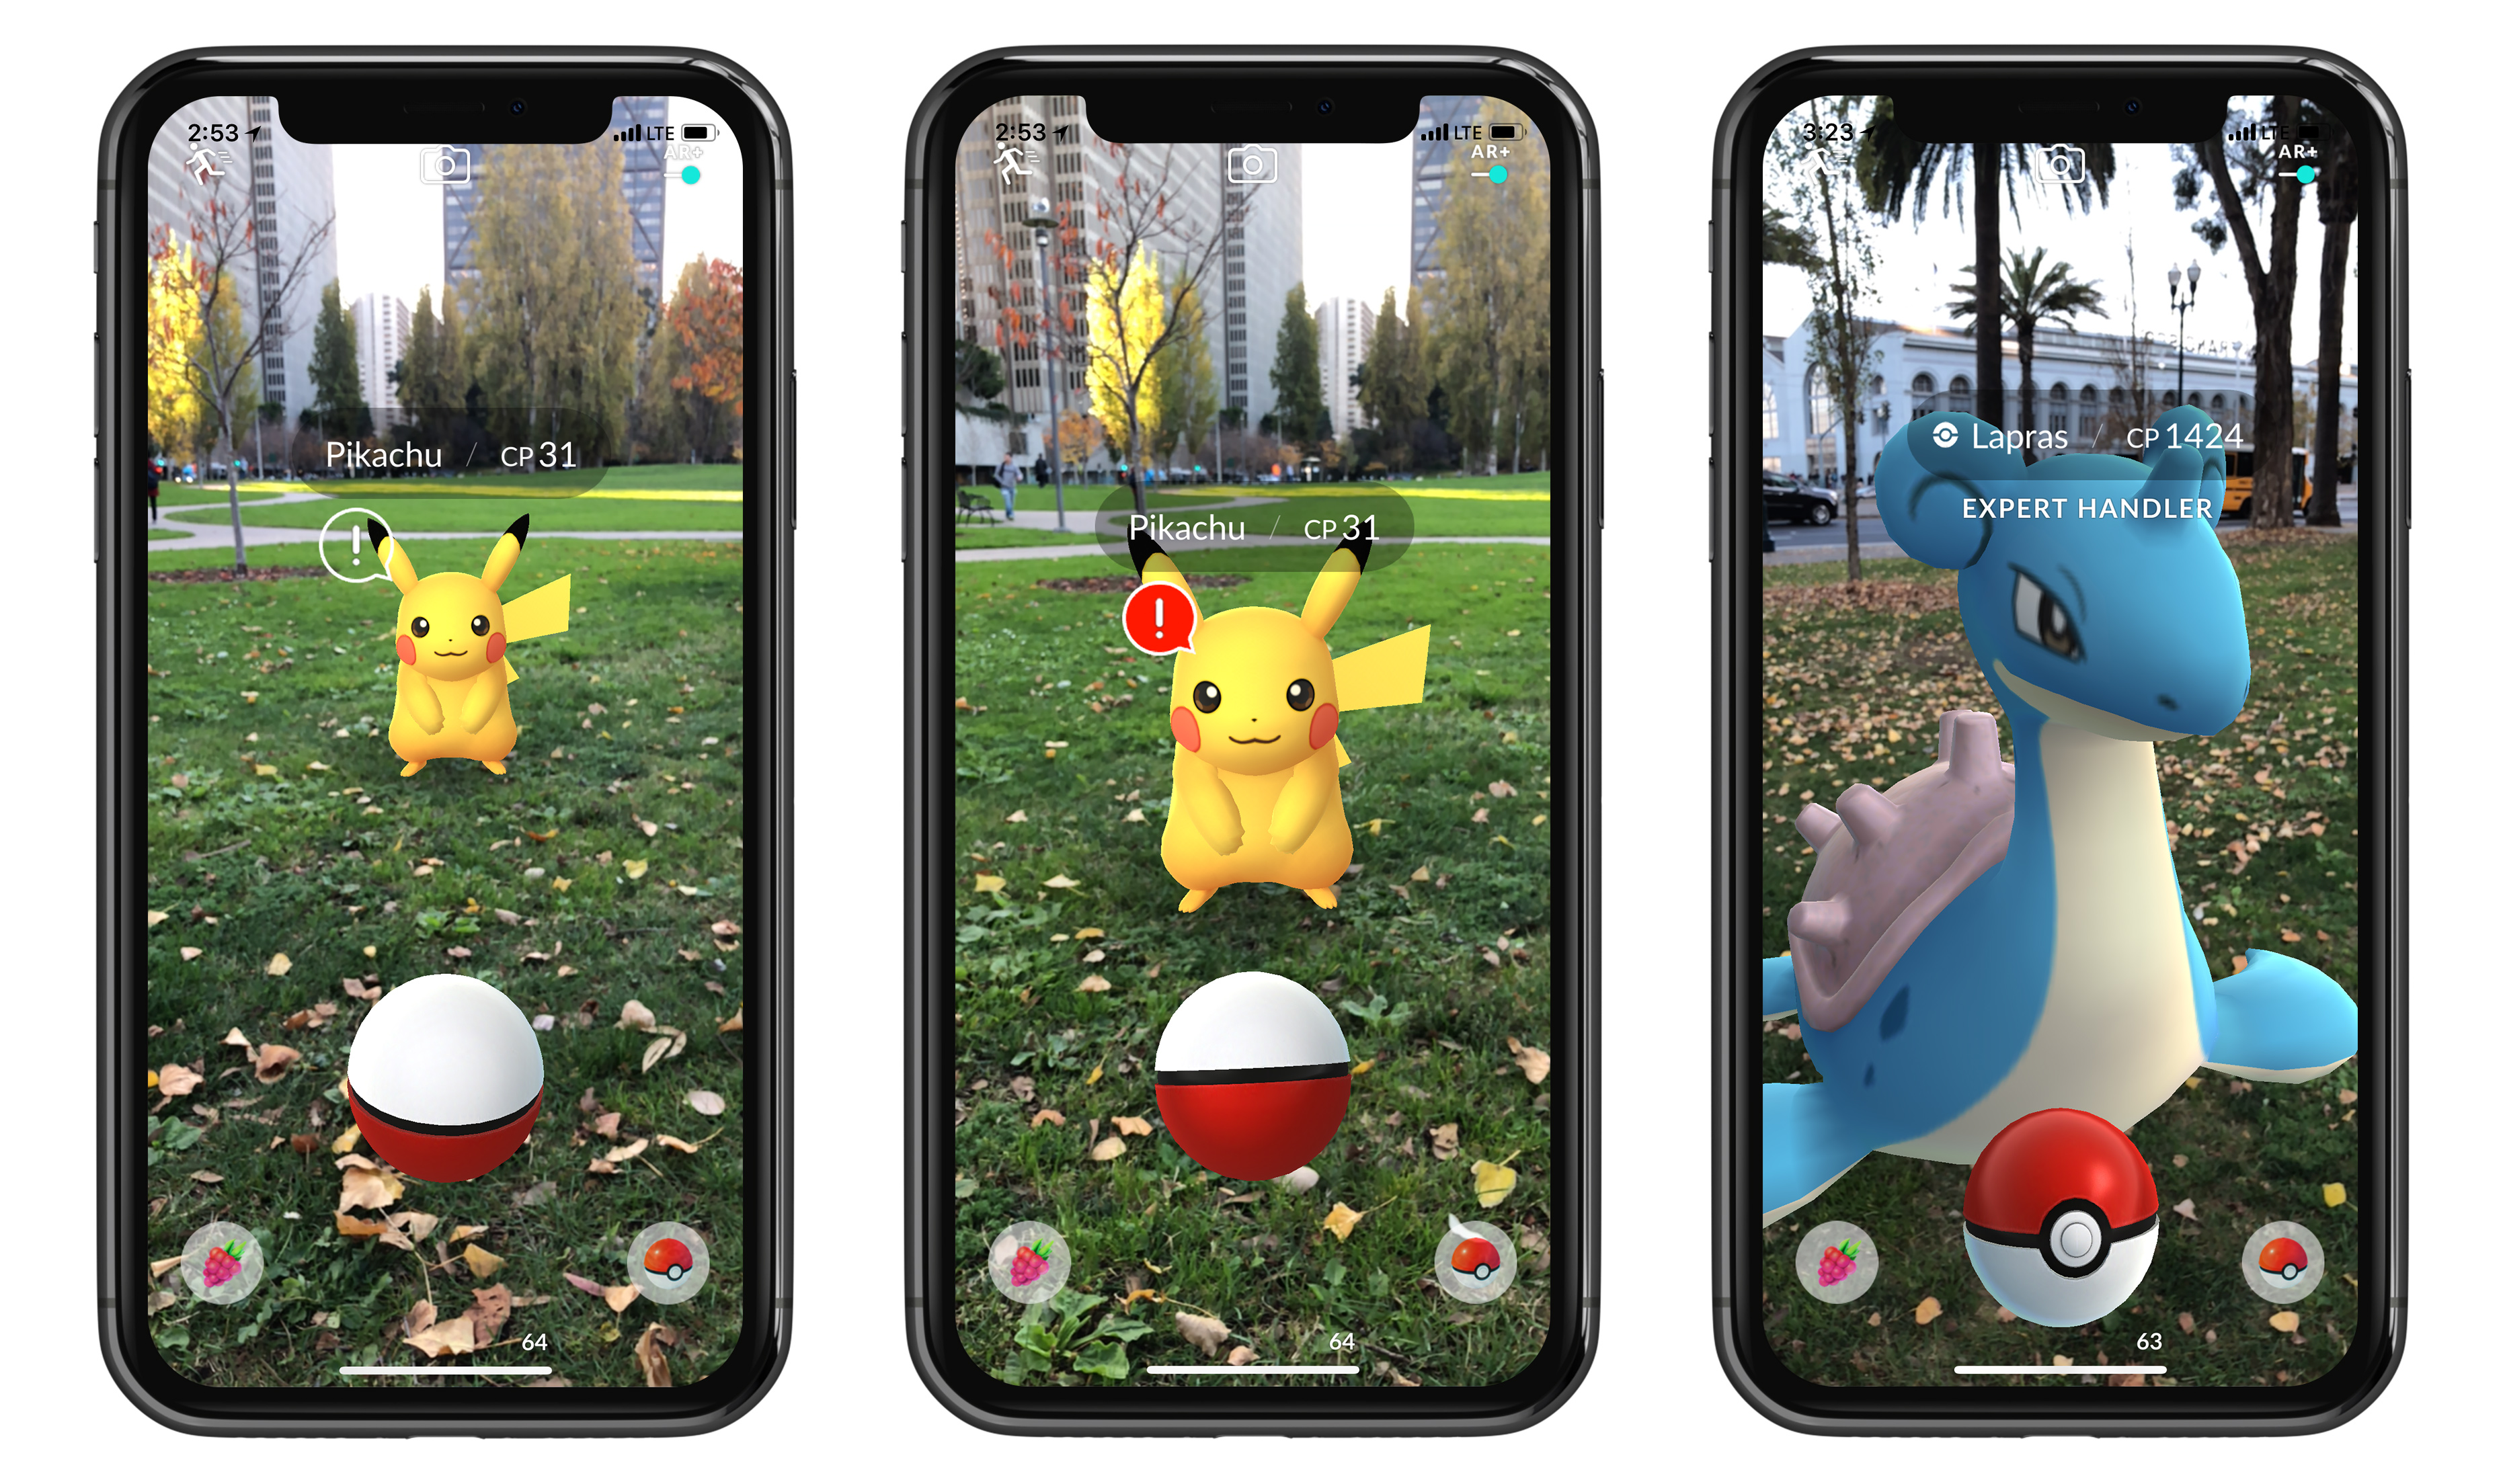 Pokémon GO Just Got More Realistic Thanks to ARKit